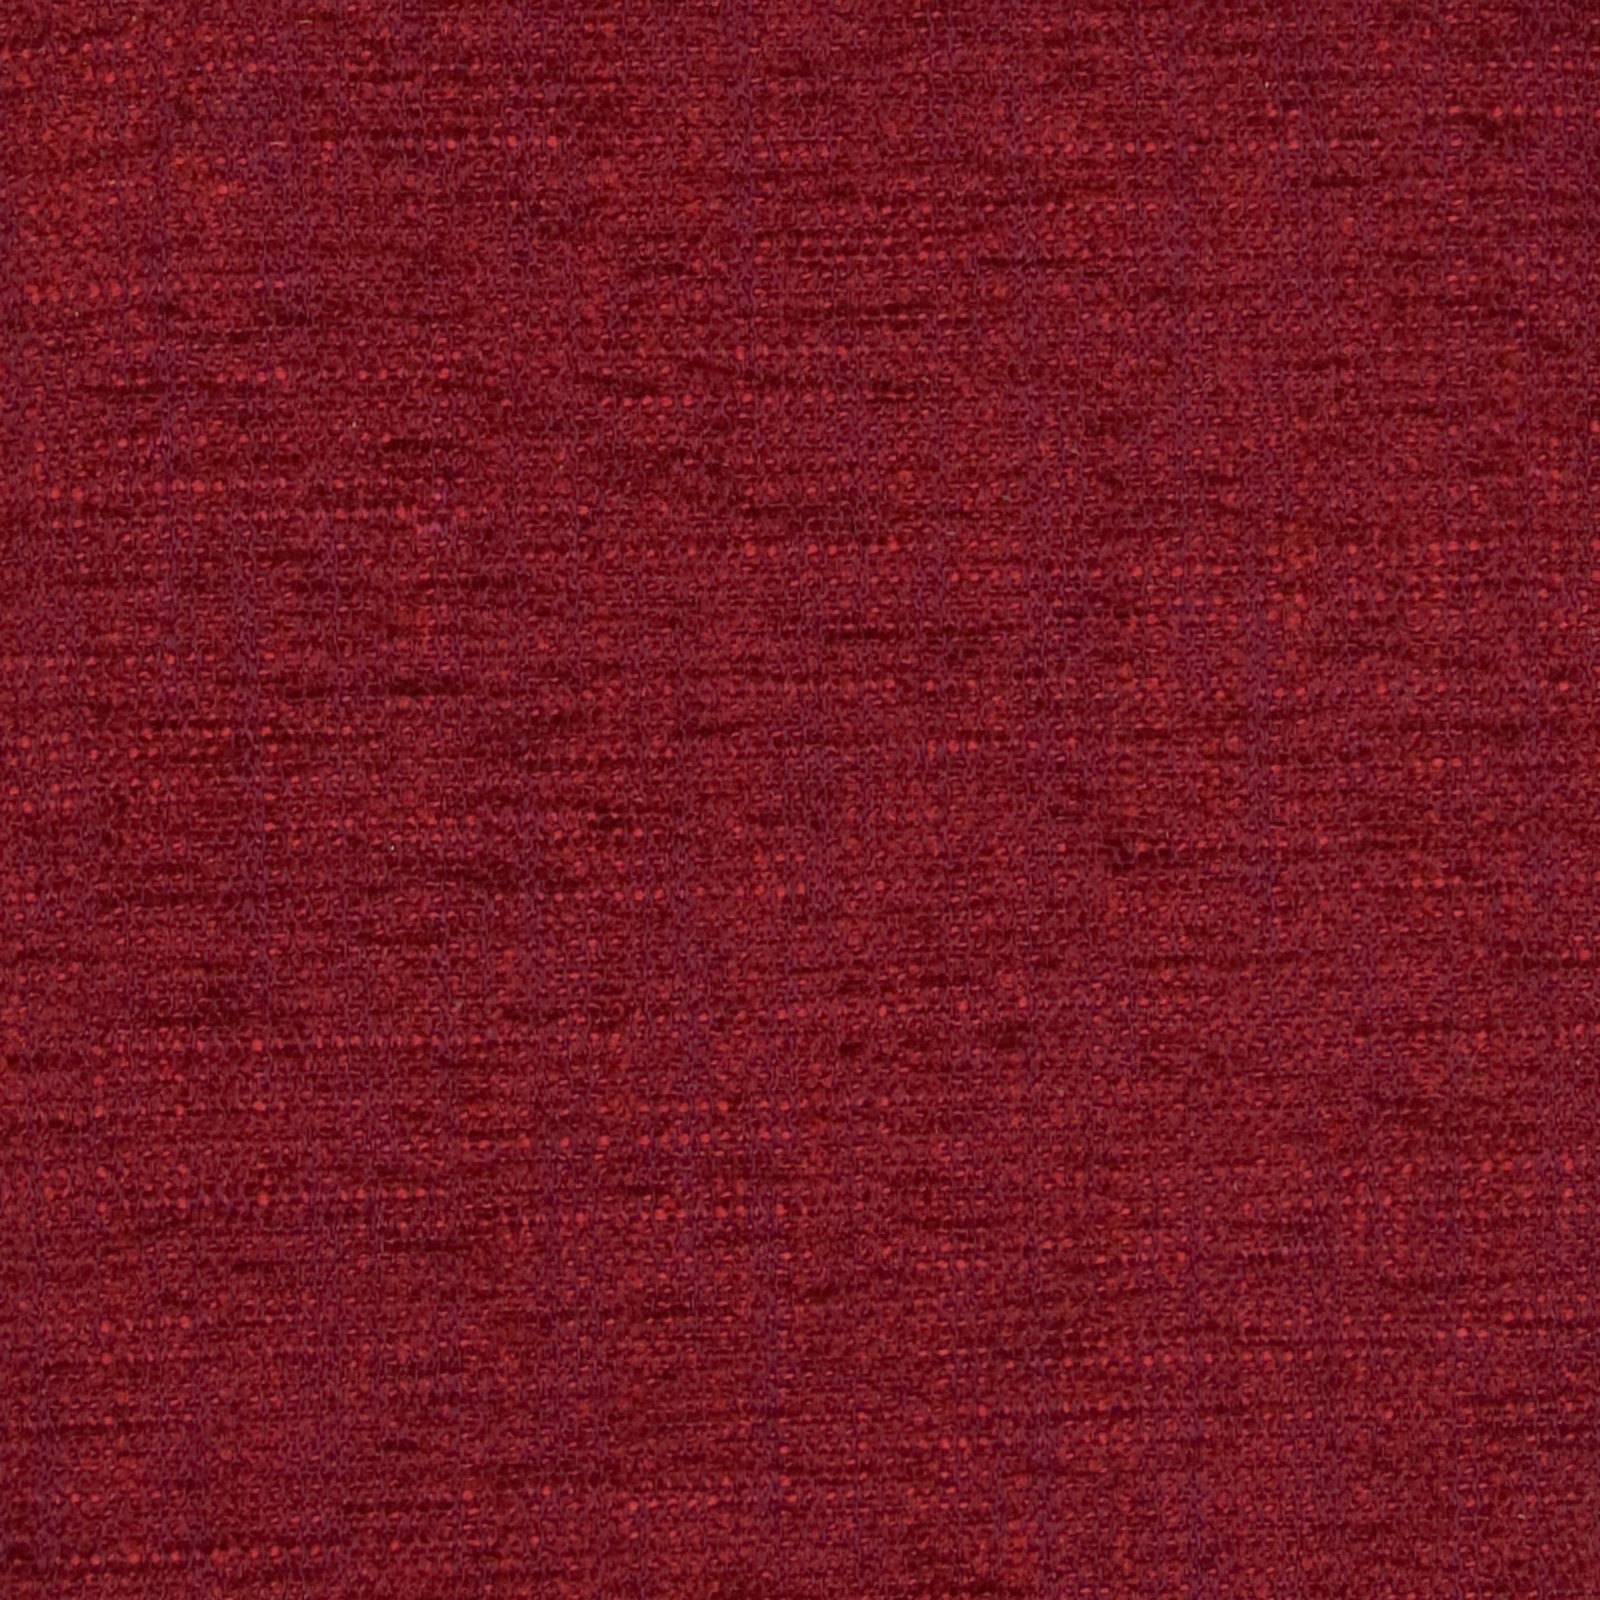 Cranberry Red Solid Chenille Upholstery Fabric